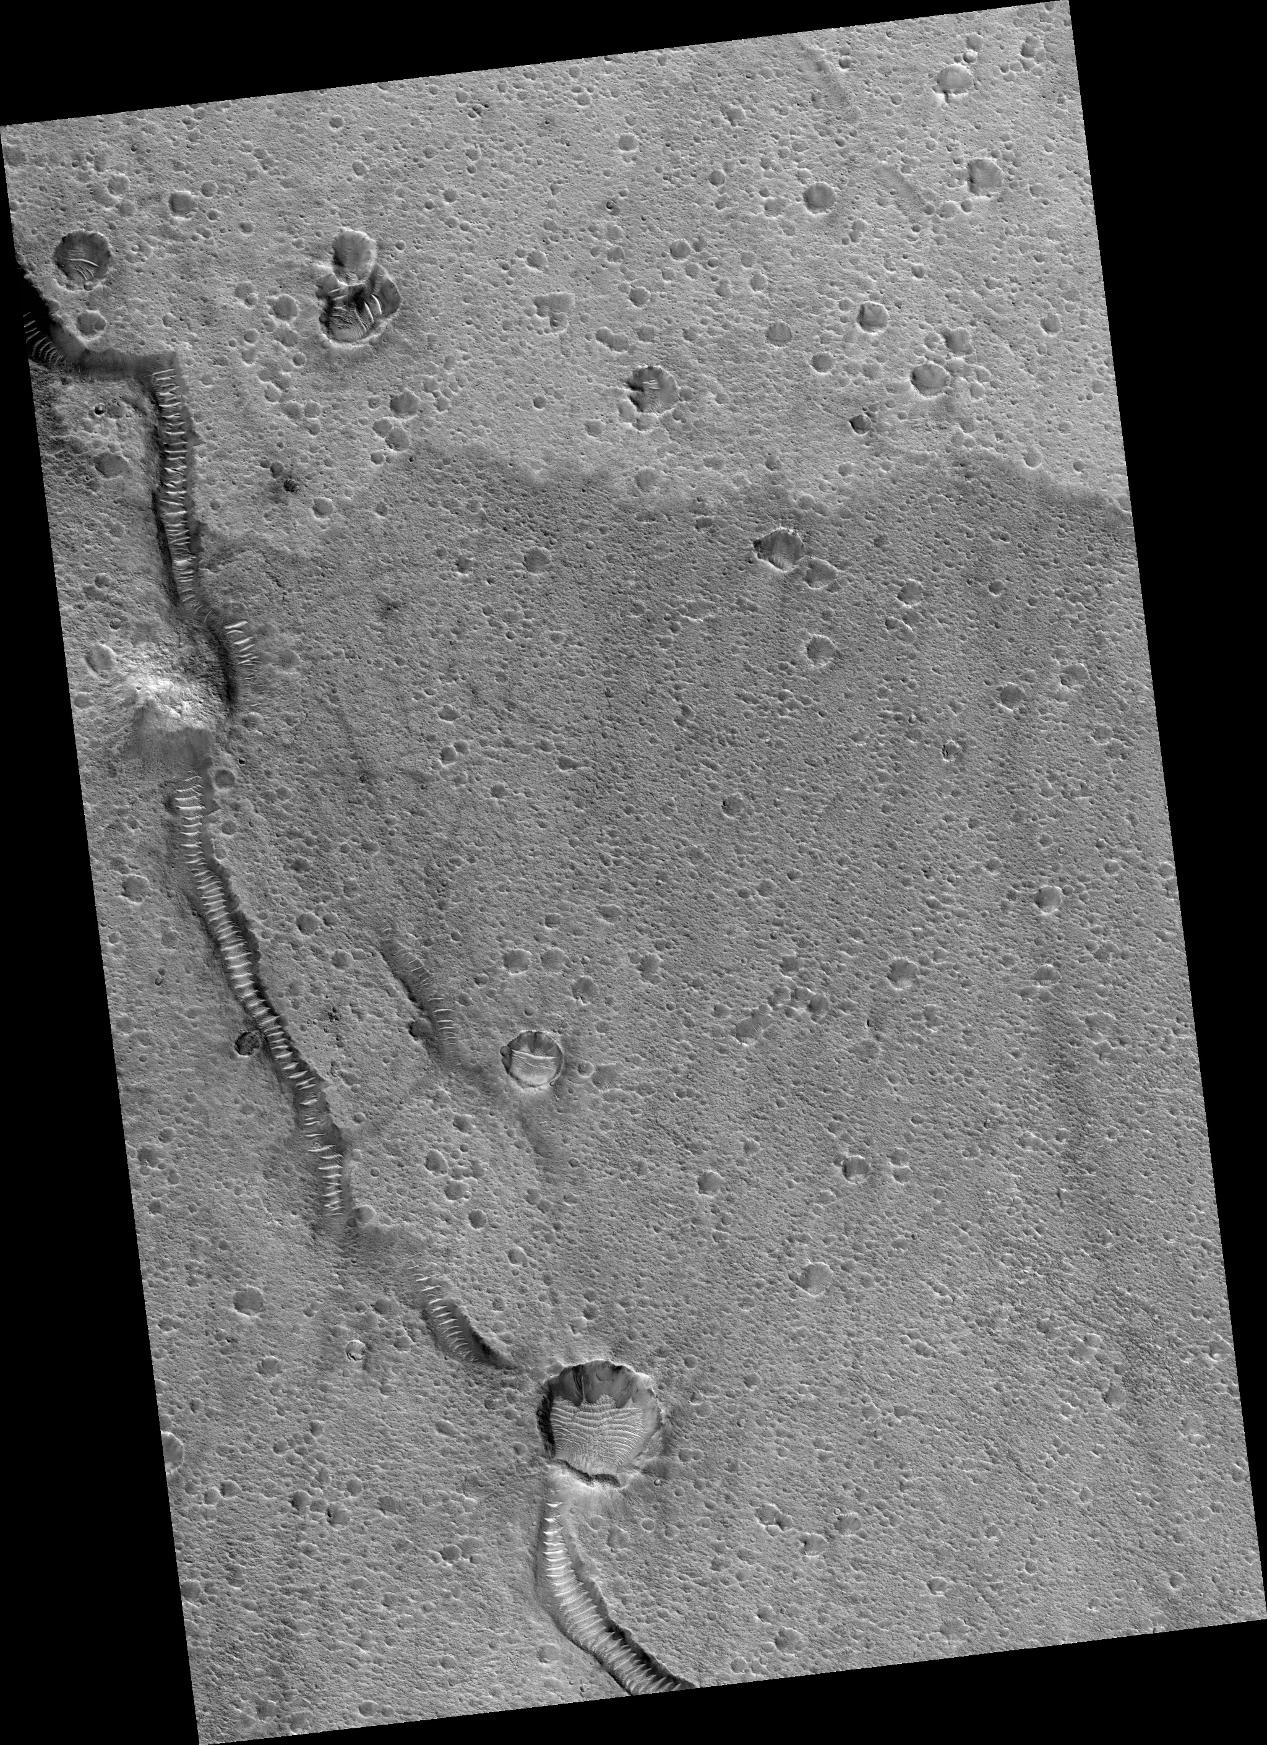 This image shows part of the surface of Chryse Planitia, near the mouth of several of the giant outflow channels carved by massive floods. At this location the channel is much too large to be seen within a HiRISE image, and this shows an area of level plains near the mouth.